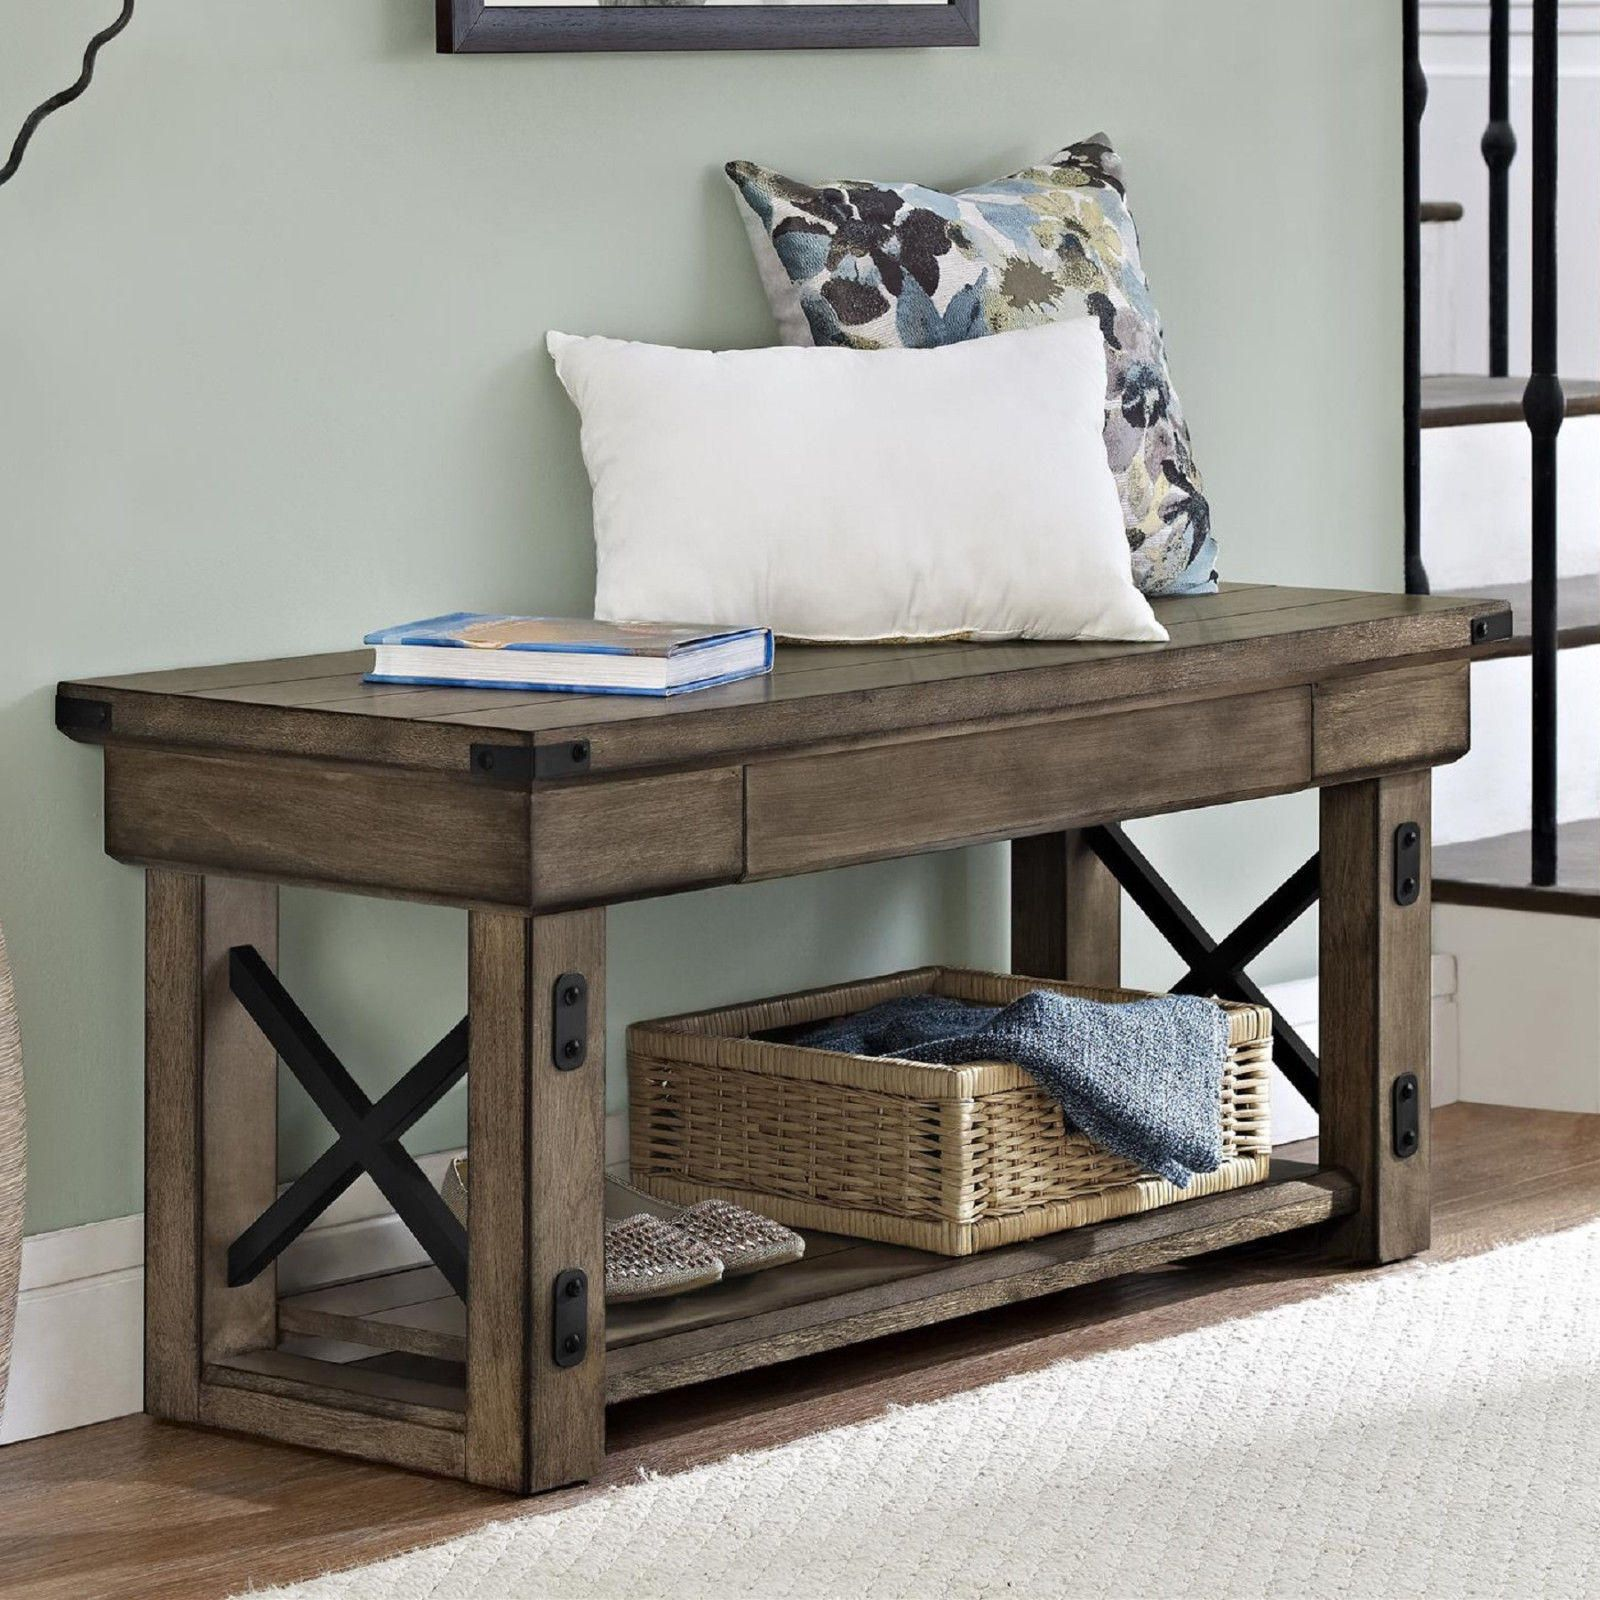 Rustic hallway furniture  Entryway Storage Bench Rustic Hallway Living Room Bedroom Seat Home